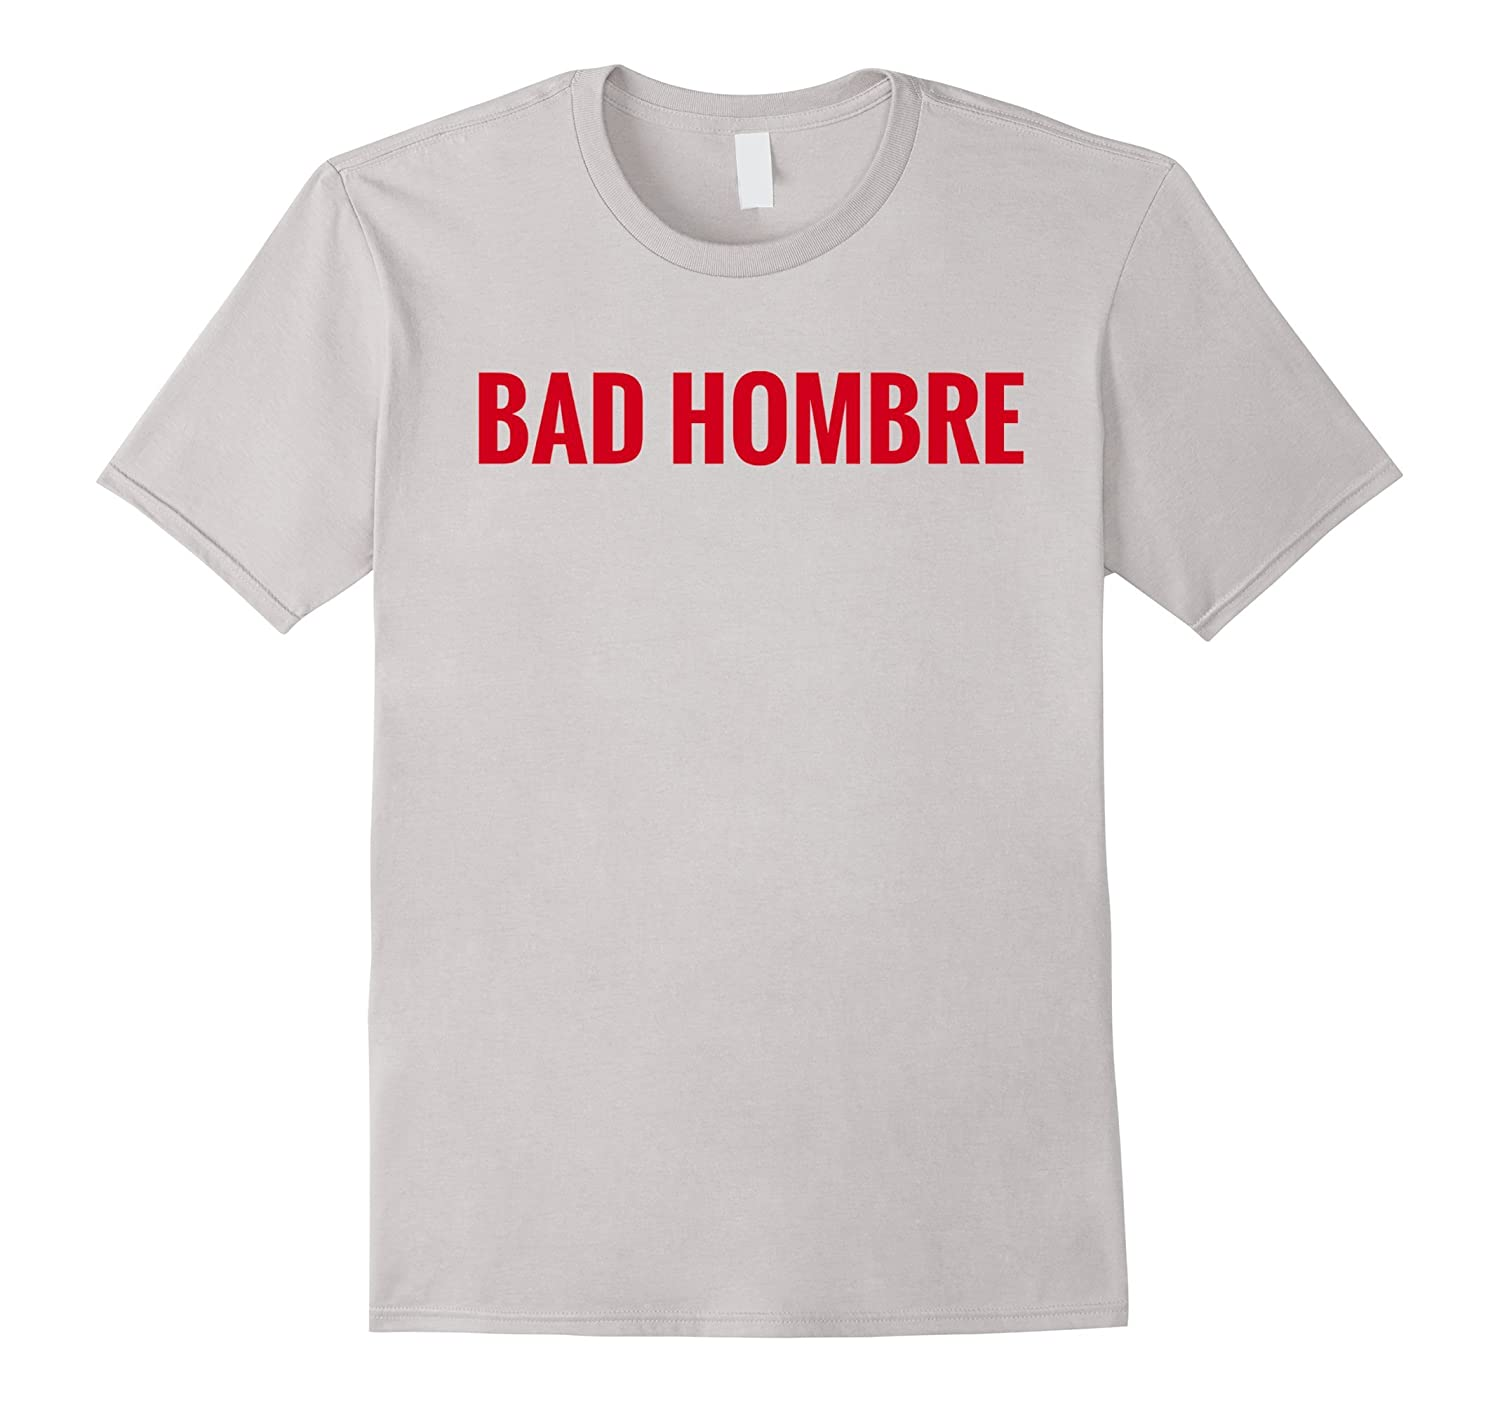 Bad Hombre Shirt Anti-Trump TShirt Red White Grey Men Women-CD